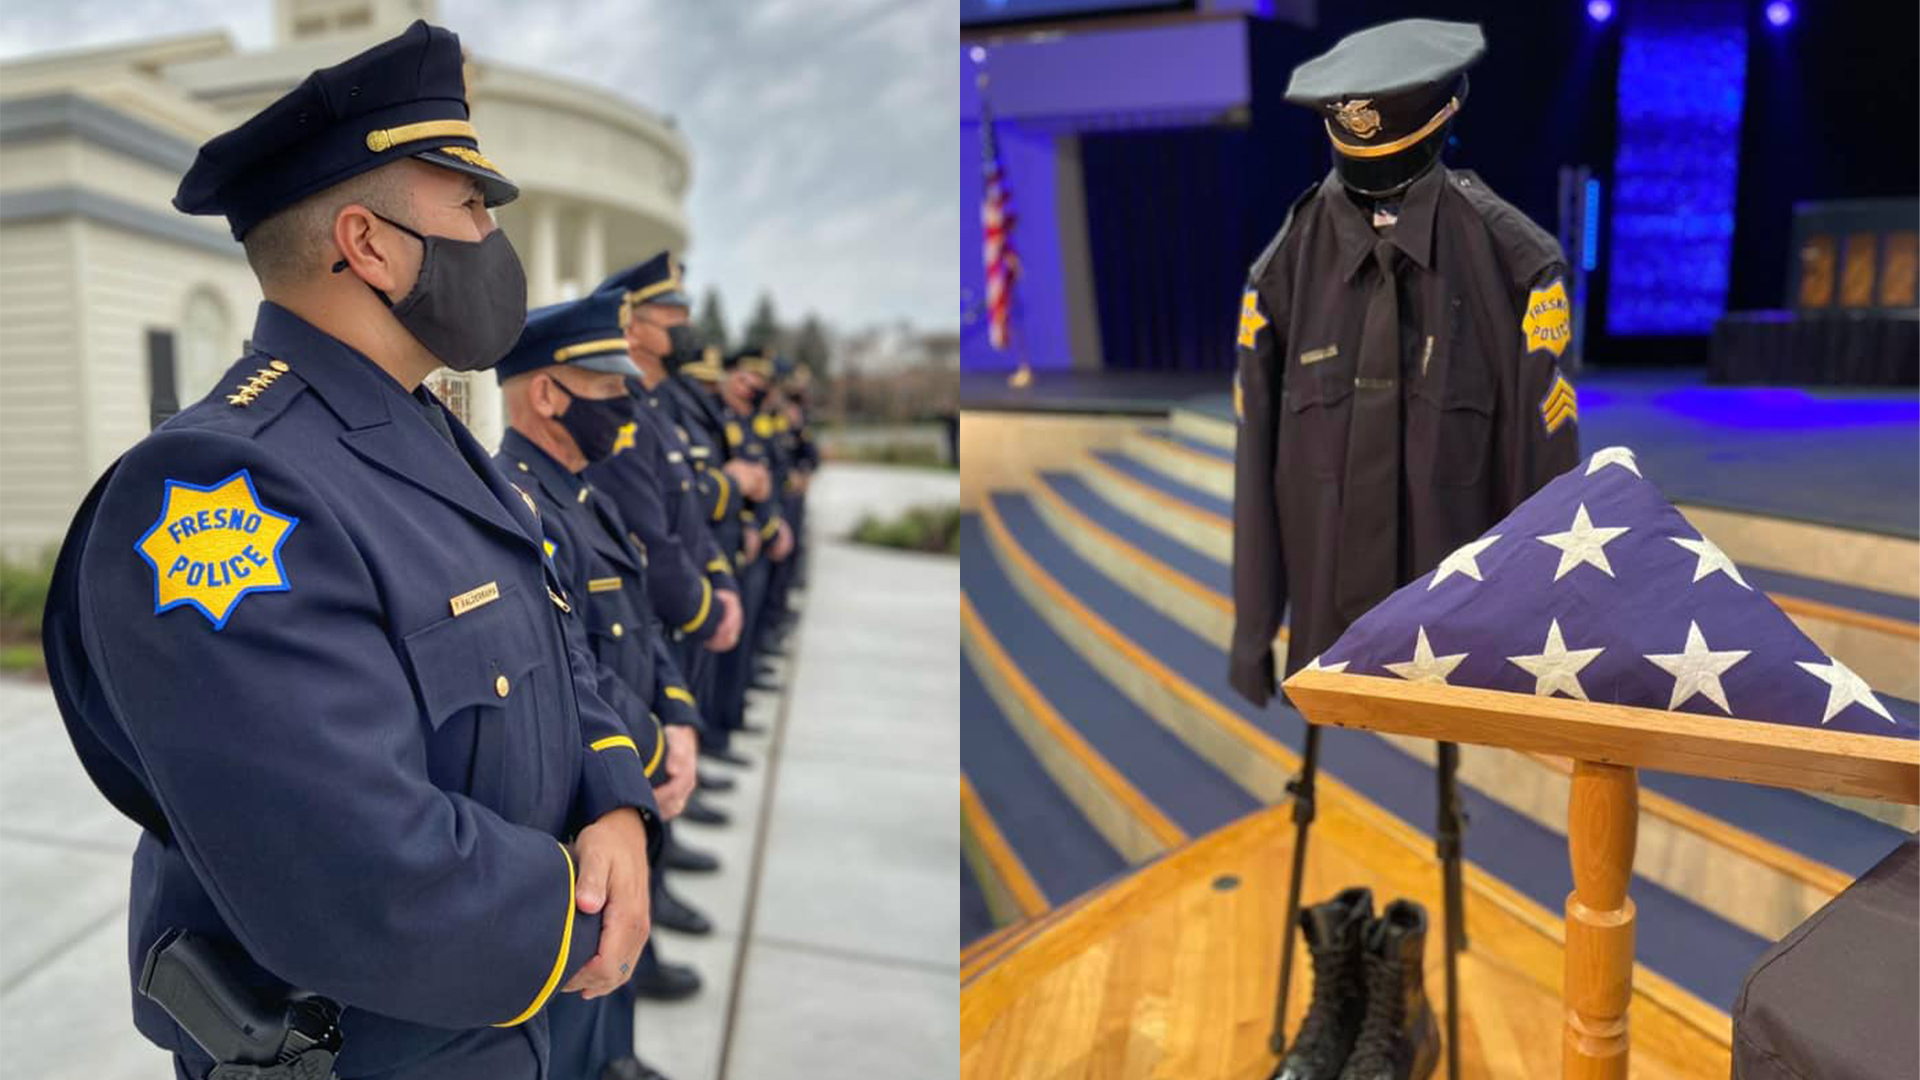 Fresno Police sergeant who died due to COVID-19 laid to rest